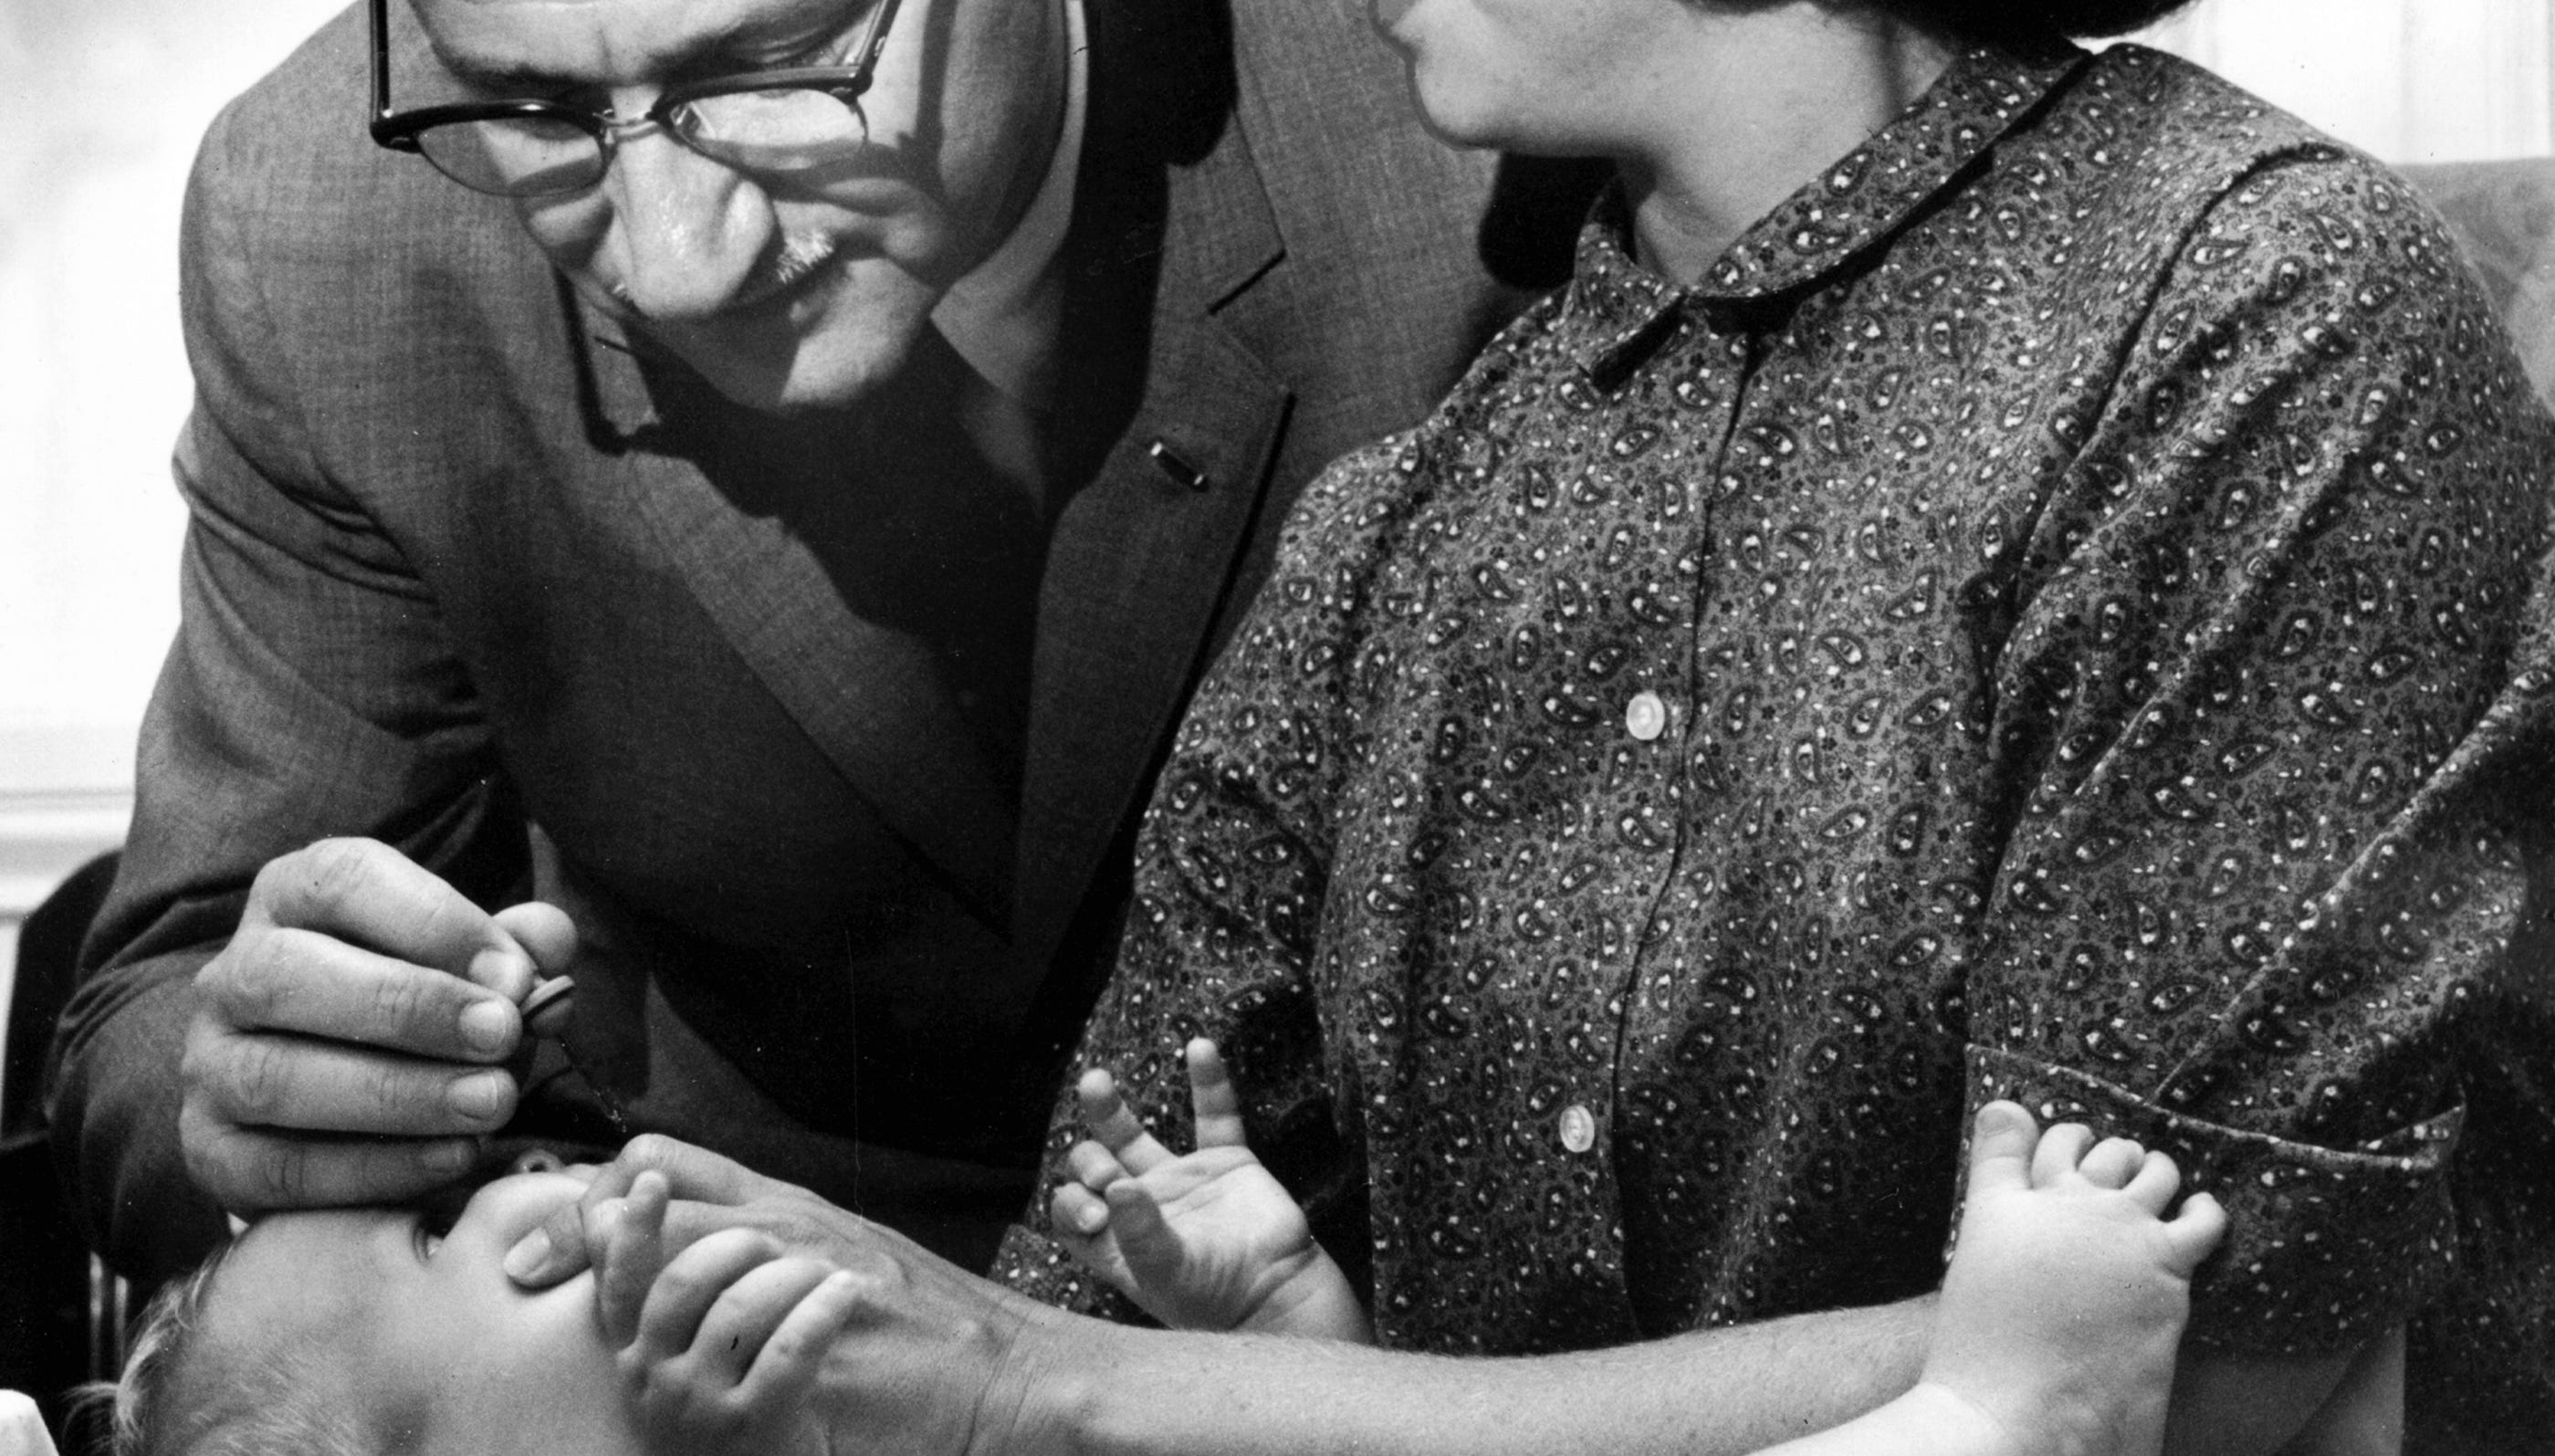 Our history: Sabin and Salk competed for safest polio vaccine